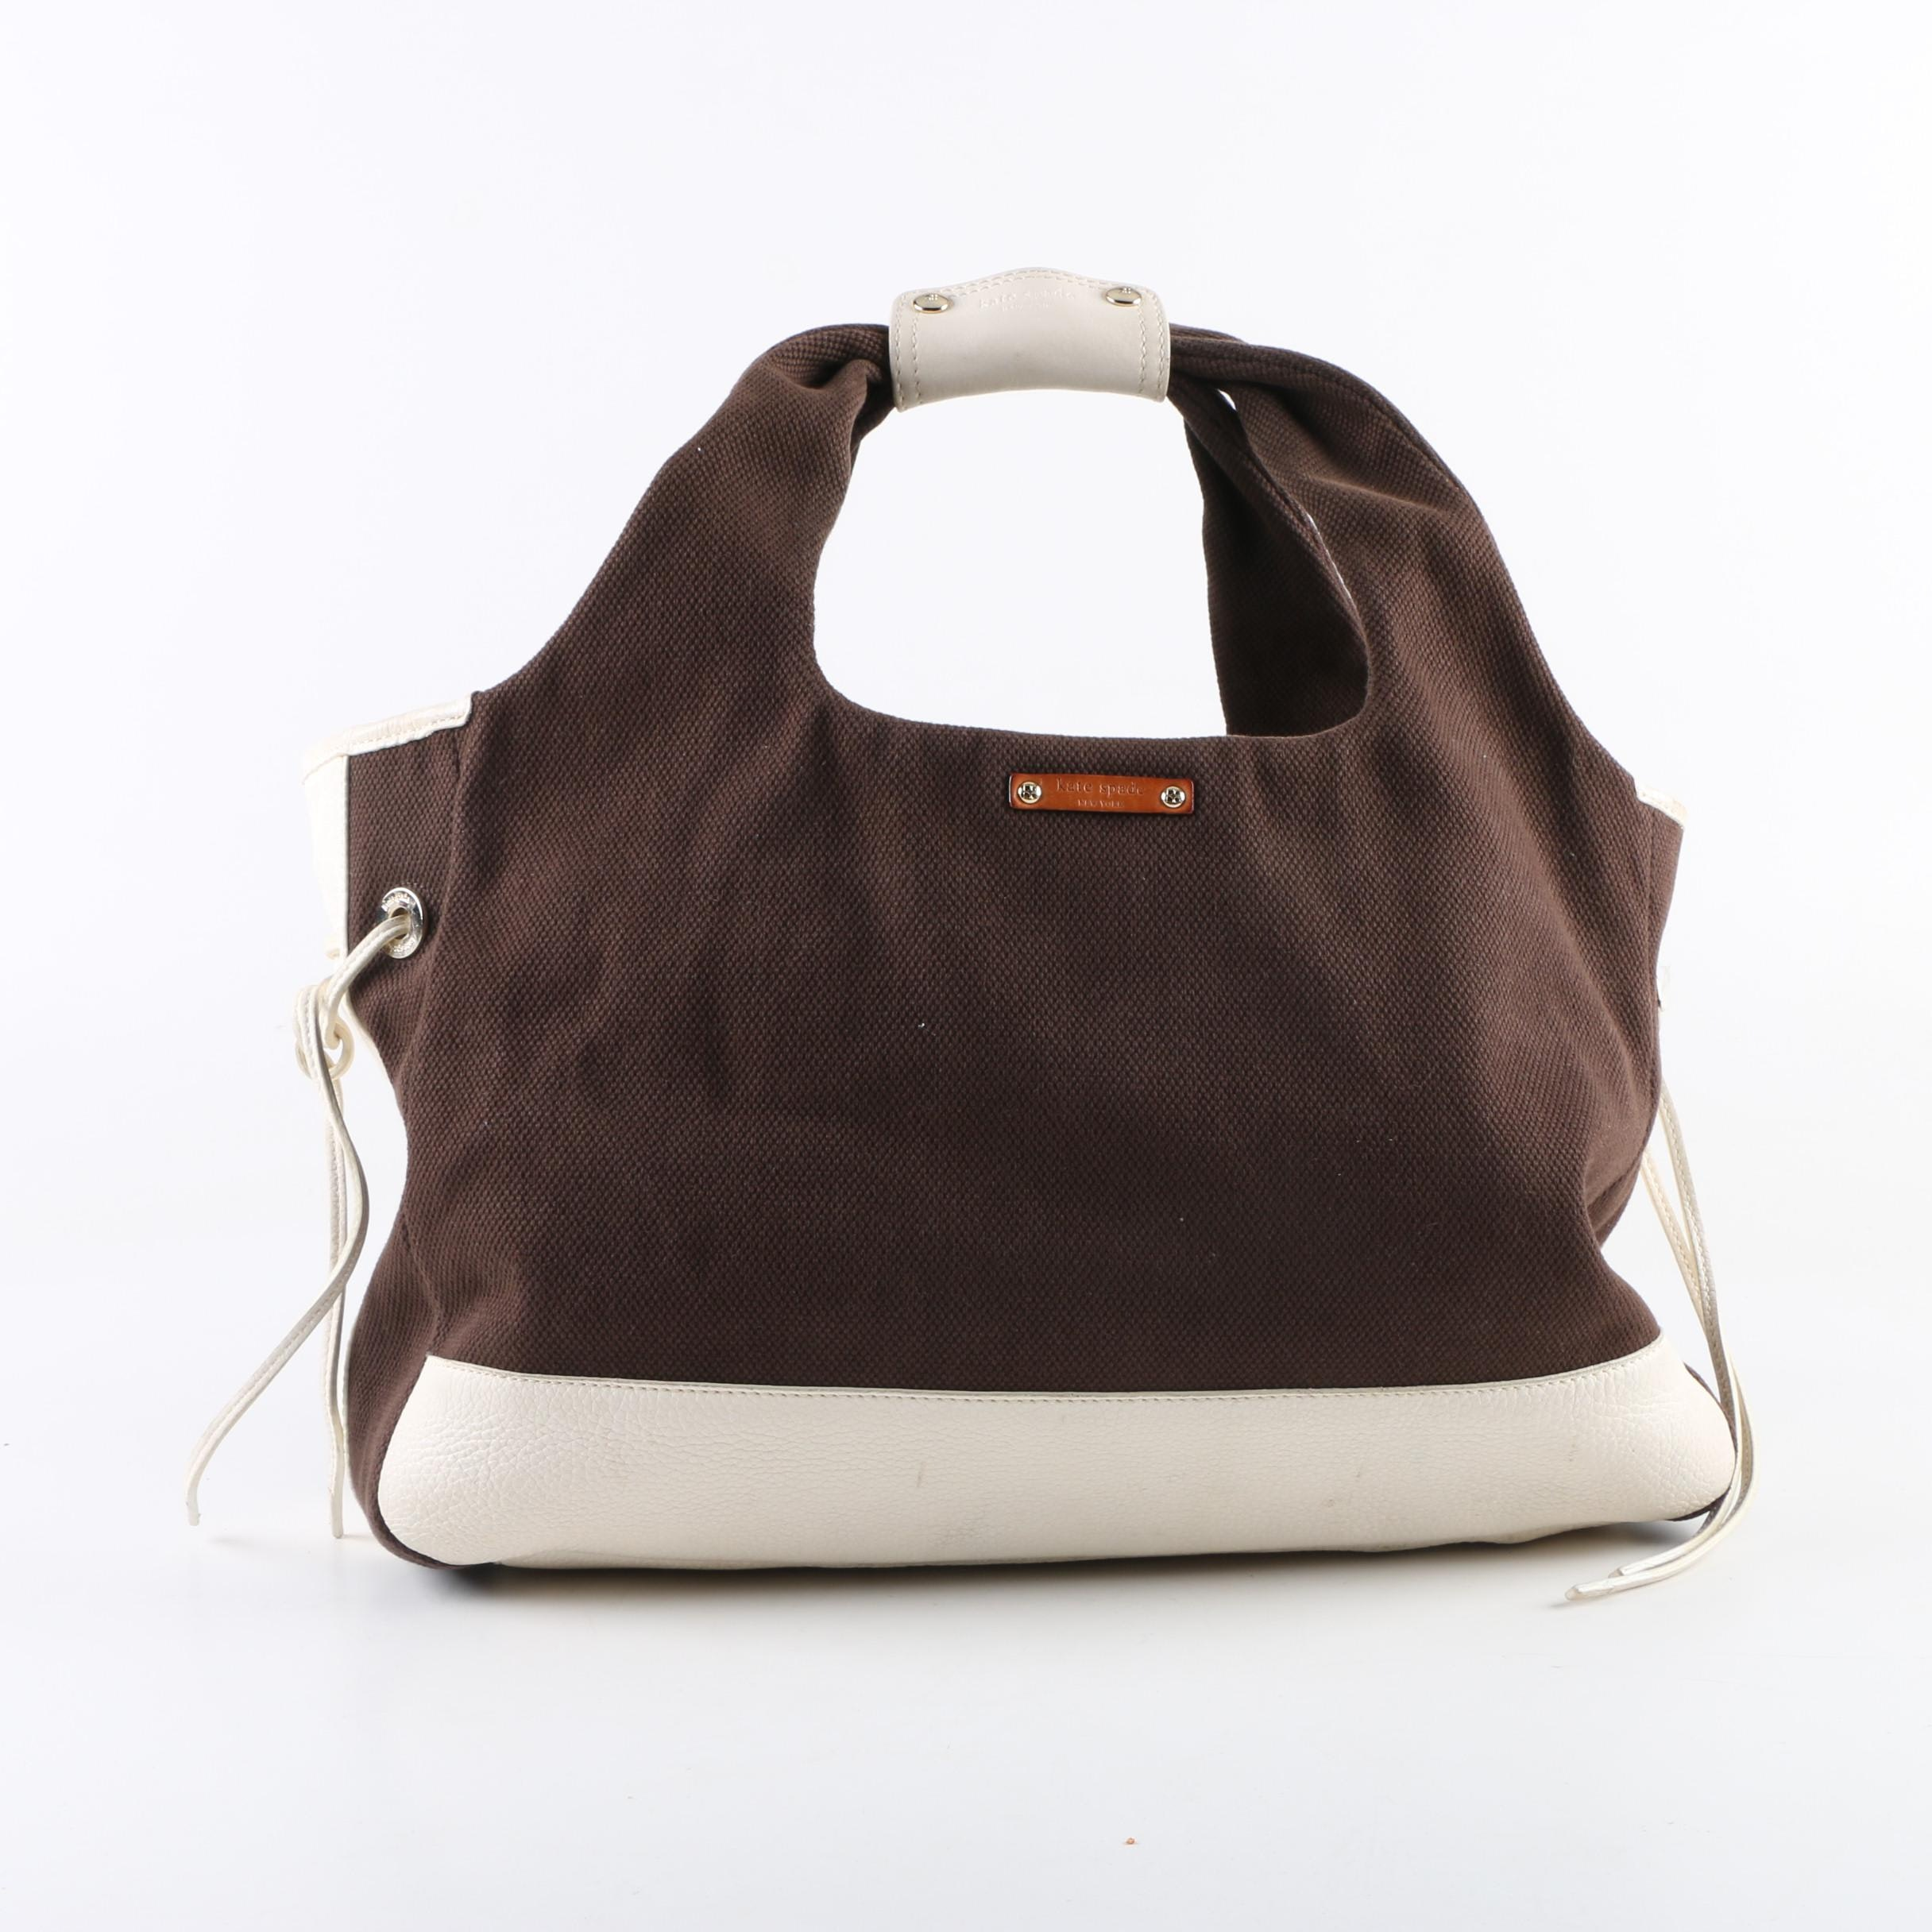 Kate Spade New York Brown Canvas Tote with Leather Accents